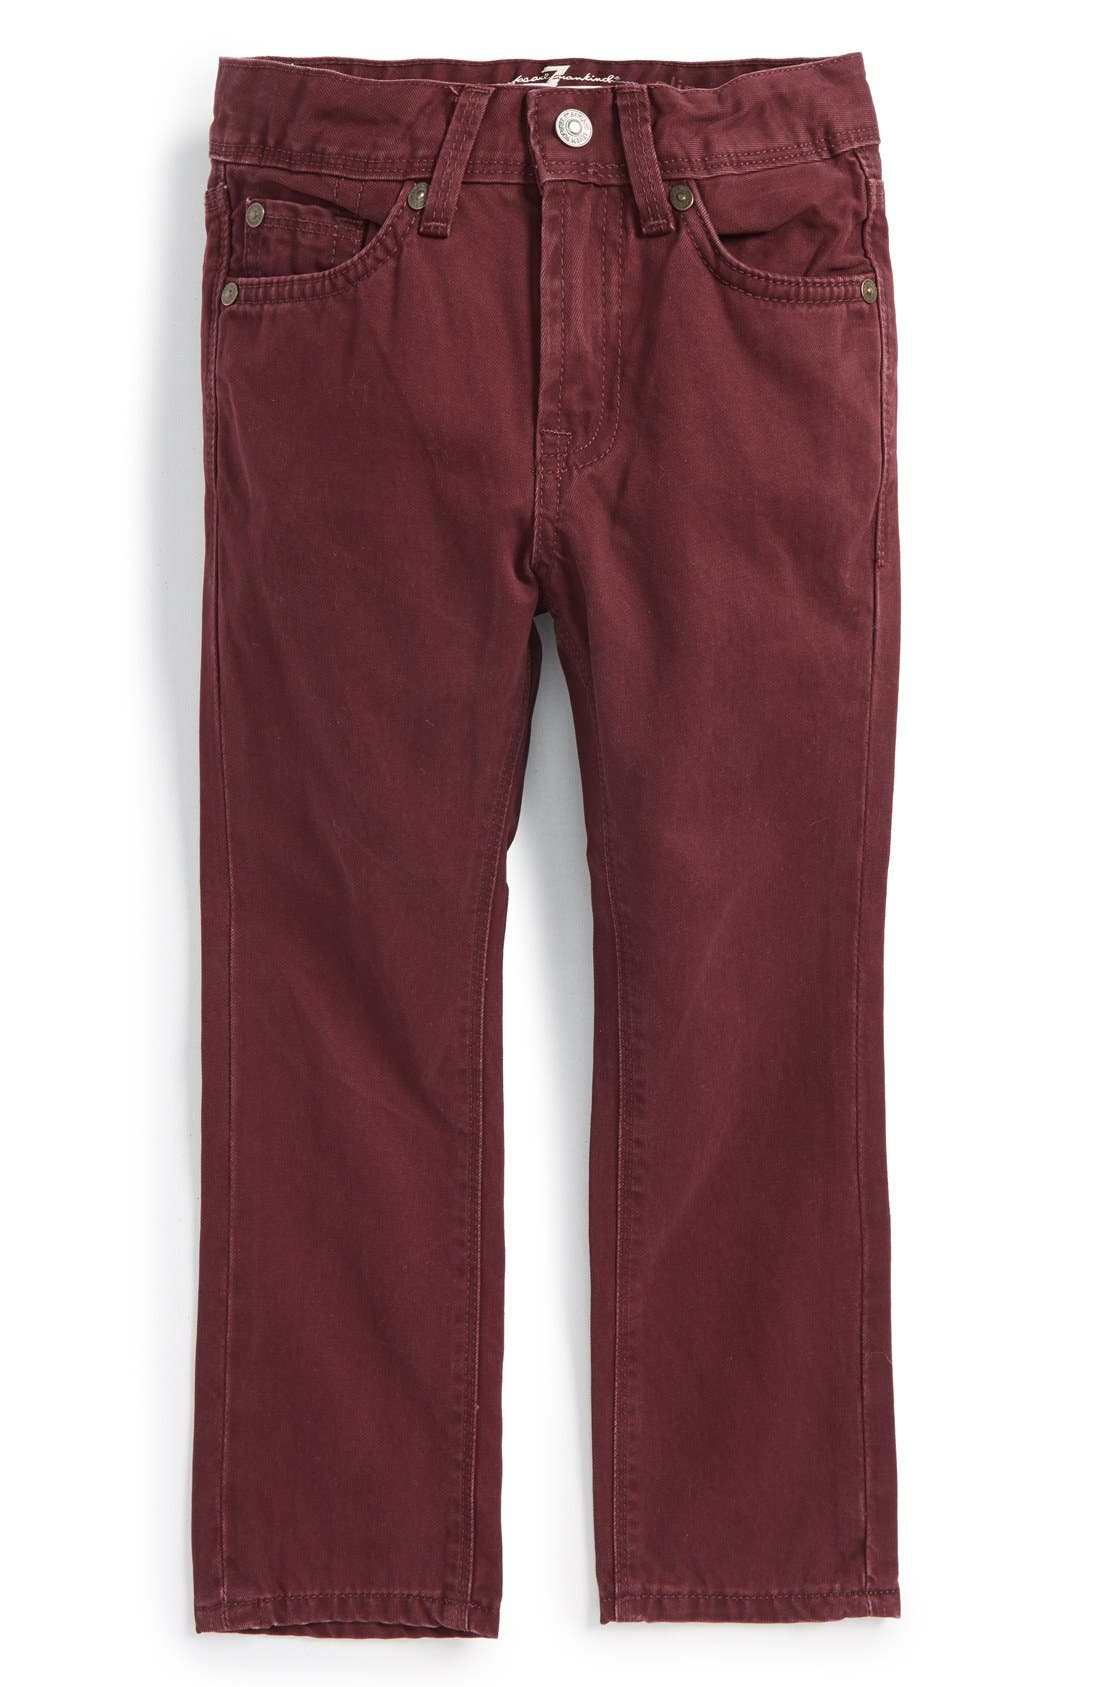 Alternate Image 1 Selected - 7 For All Mankind® 'Slimmy' Slim Fit Jeans (Toddler Boys & Little Boys) (Online Only)